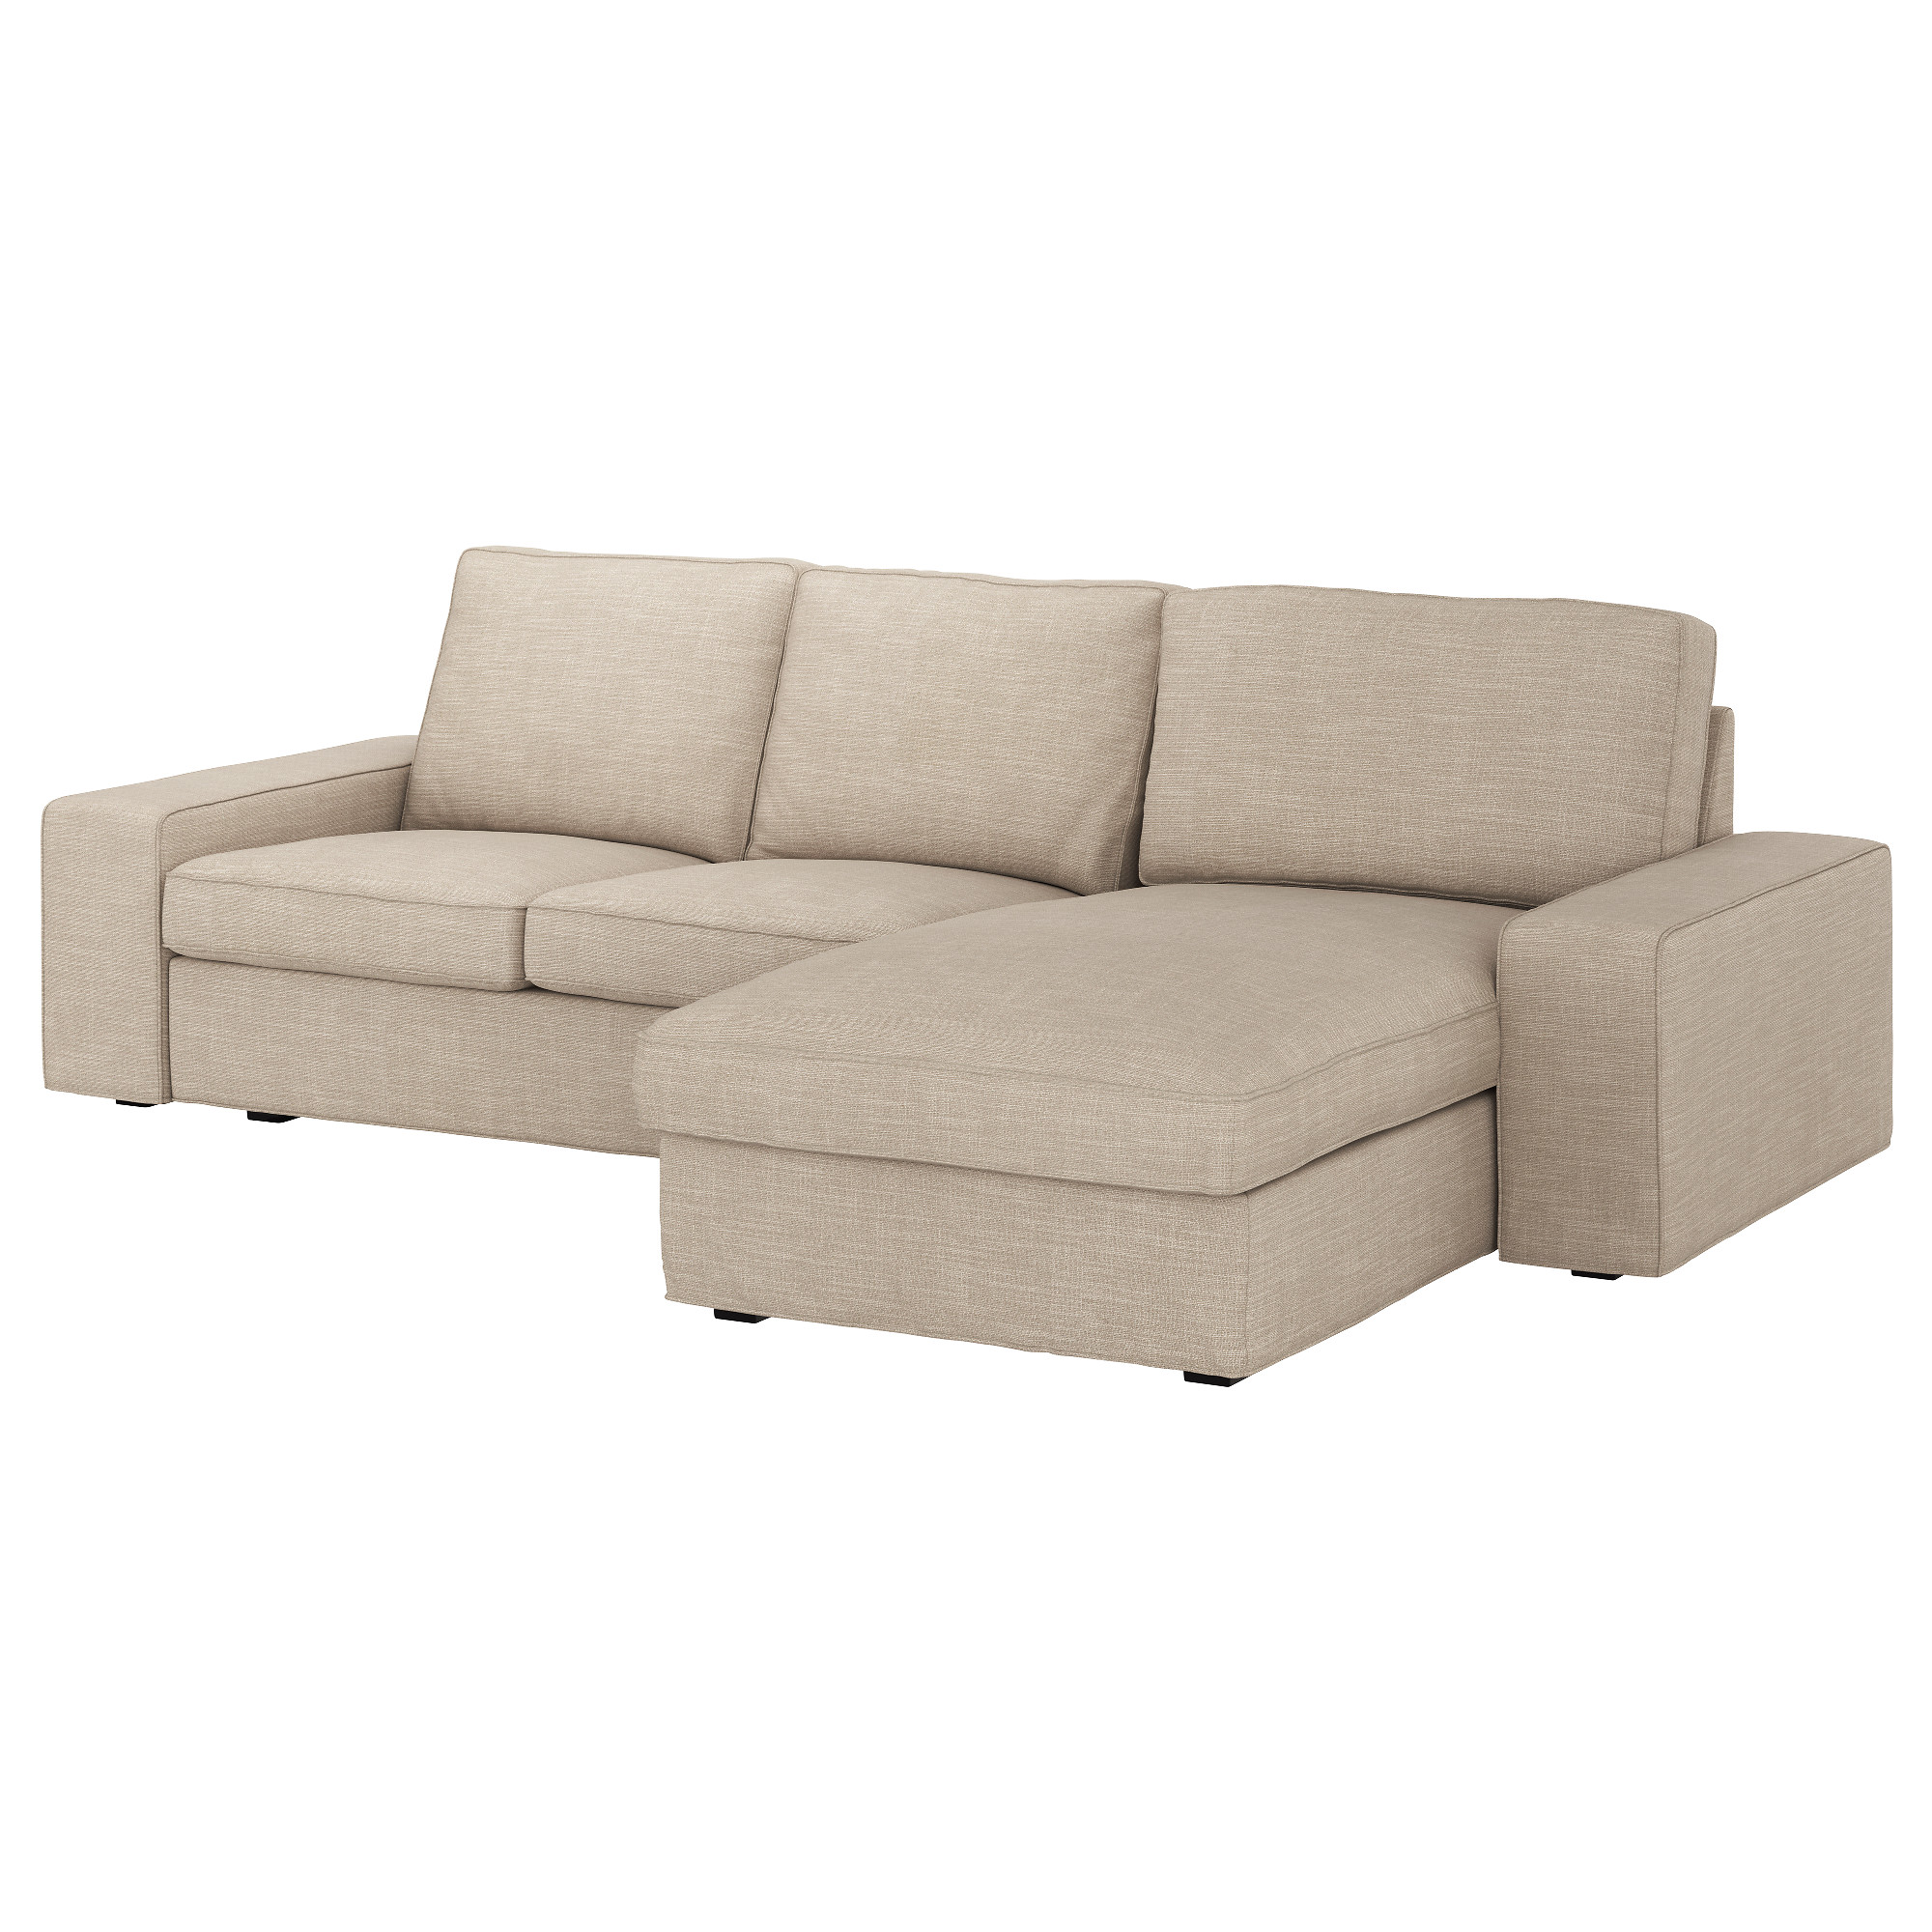 Kivik Sofa With Chaiseorrsta Light Gray Ikea